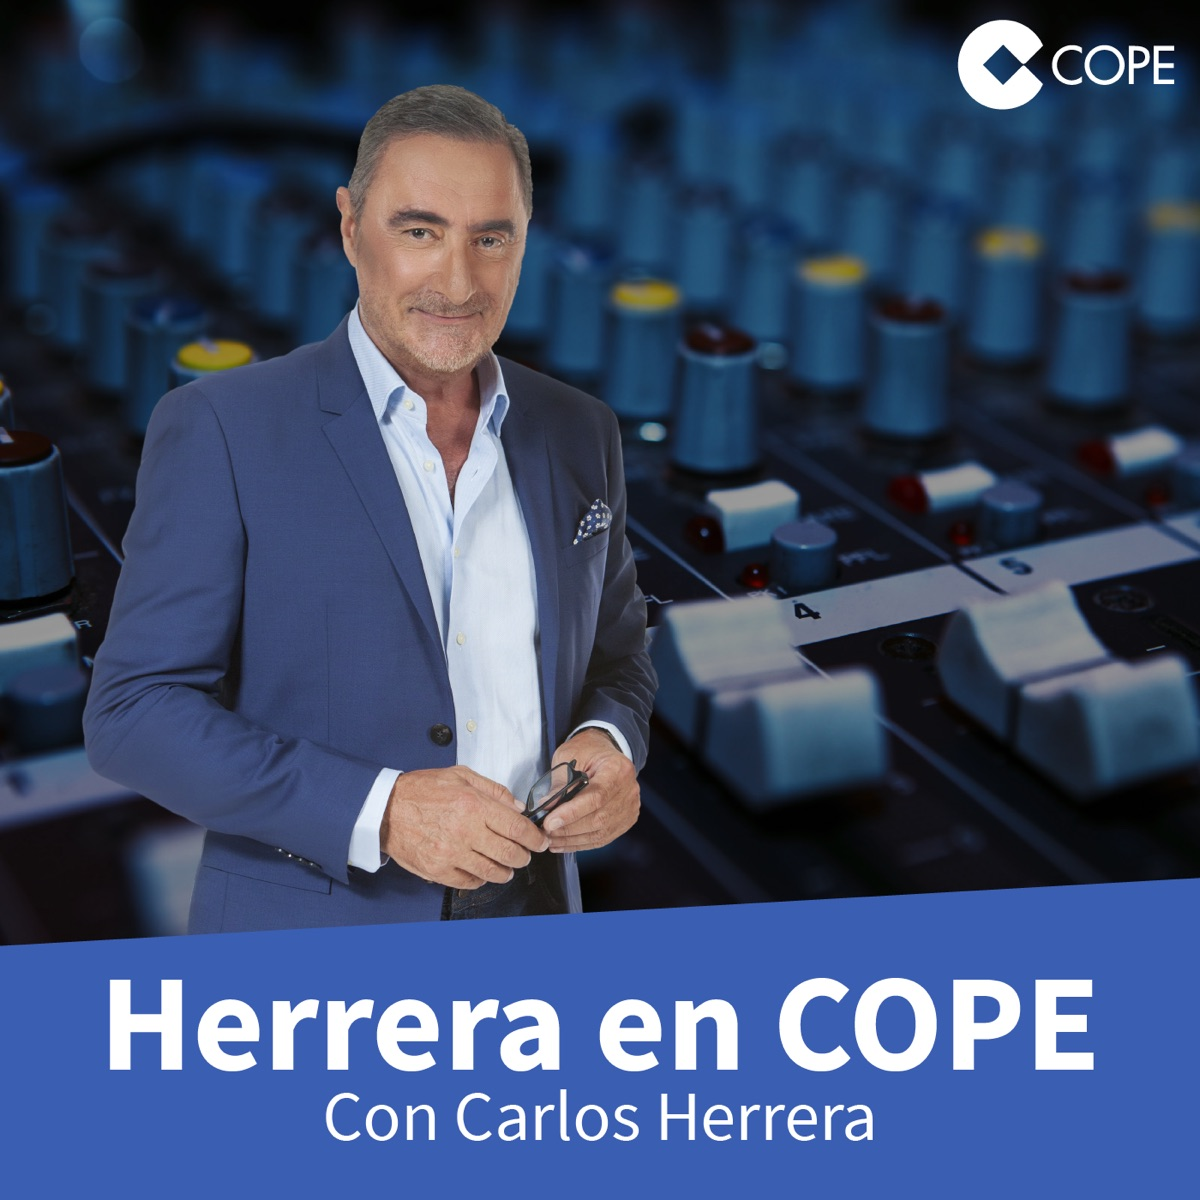 Herera en COPE (04/05/2021) De 12 a 13 horas.